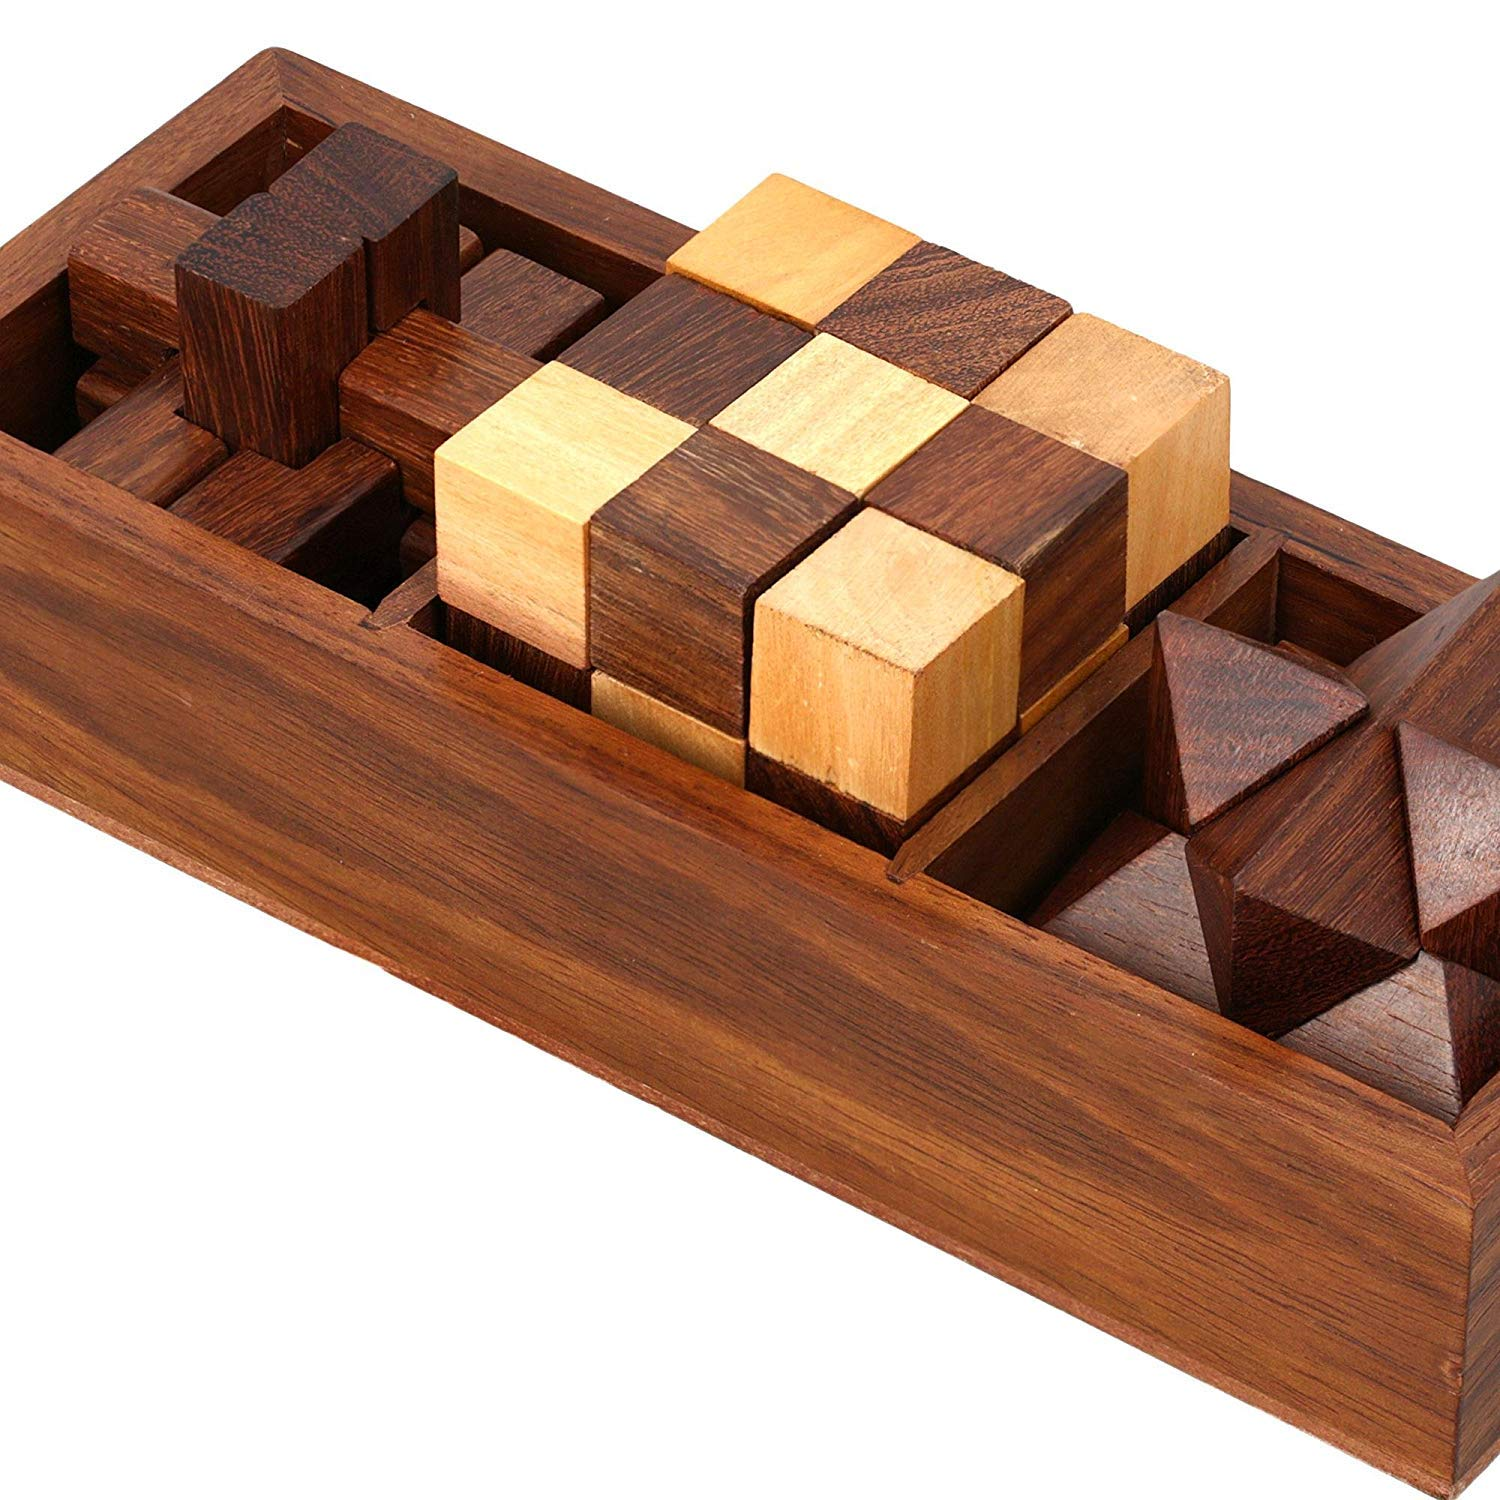 WGF 3-in-One Wooden Puzzle Games Set - 3D Puzzles